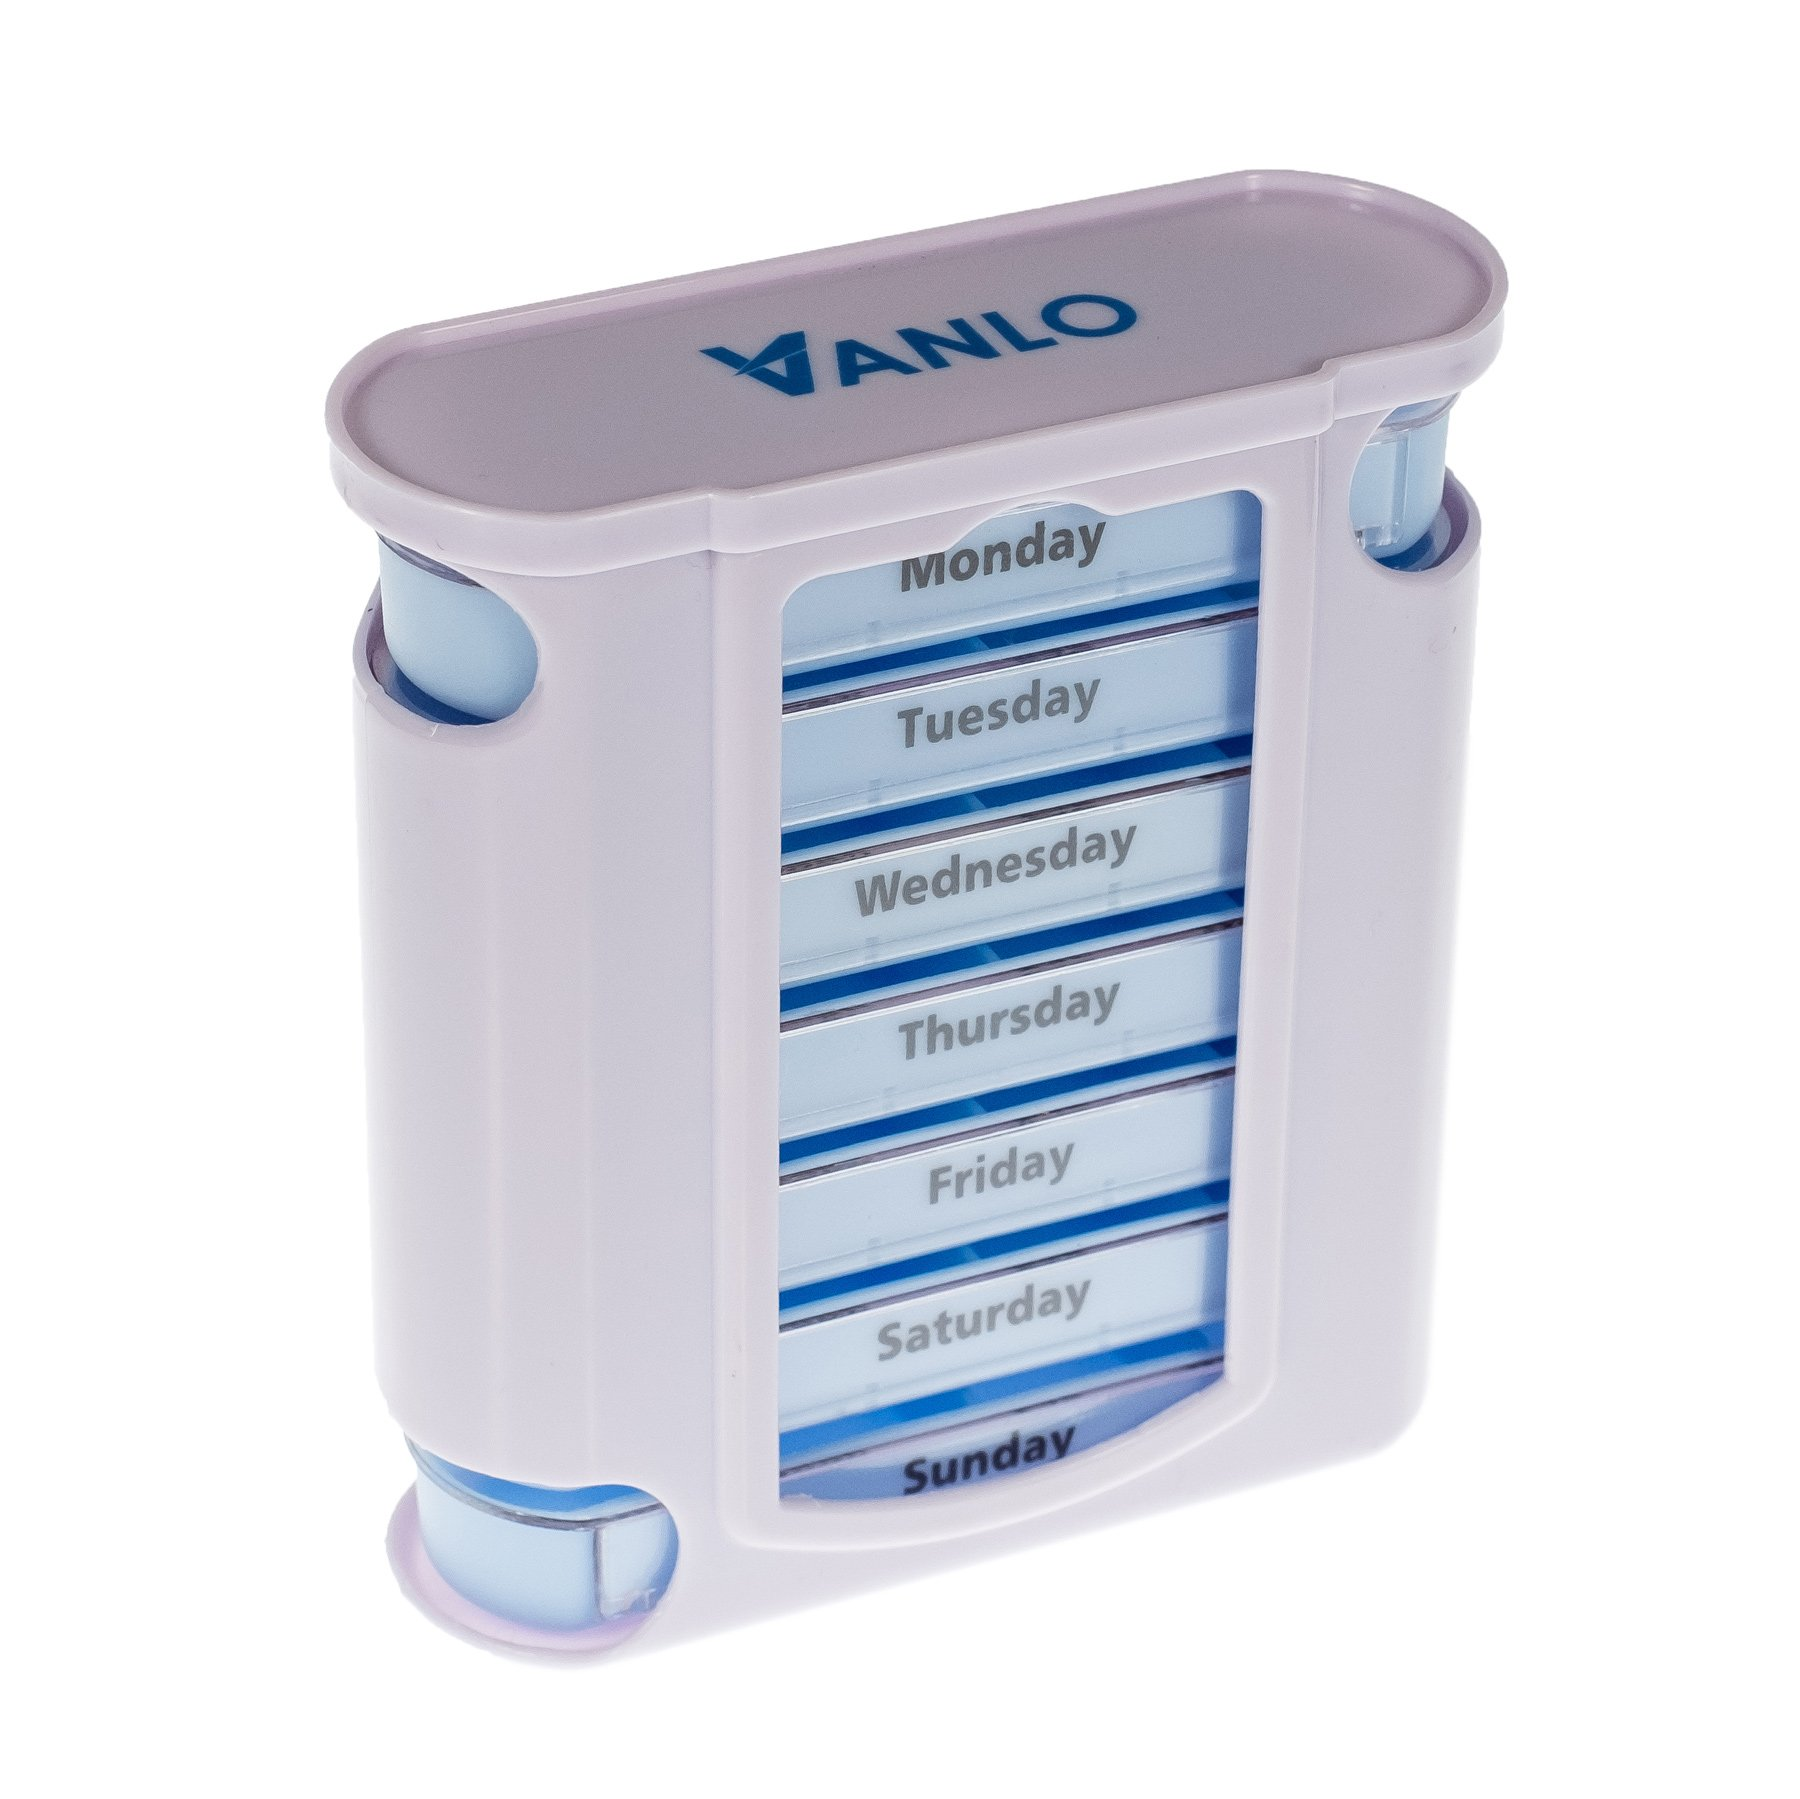 Amazon oveo pill organizer weekly case with pill splitter tower pill box organizer with 7 single box and 4 daily compartments by vanlo solutioingenieria Gallery